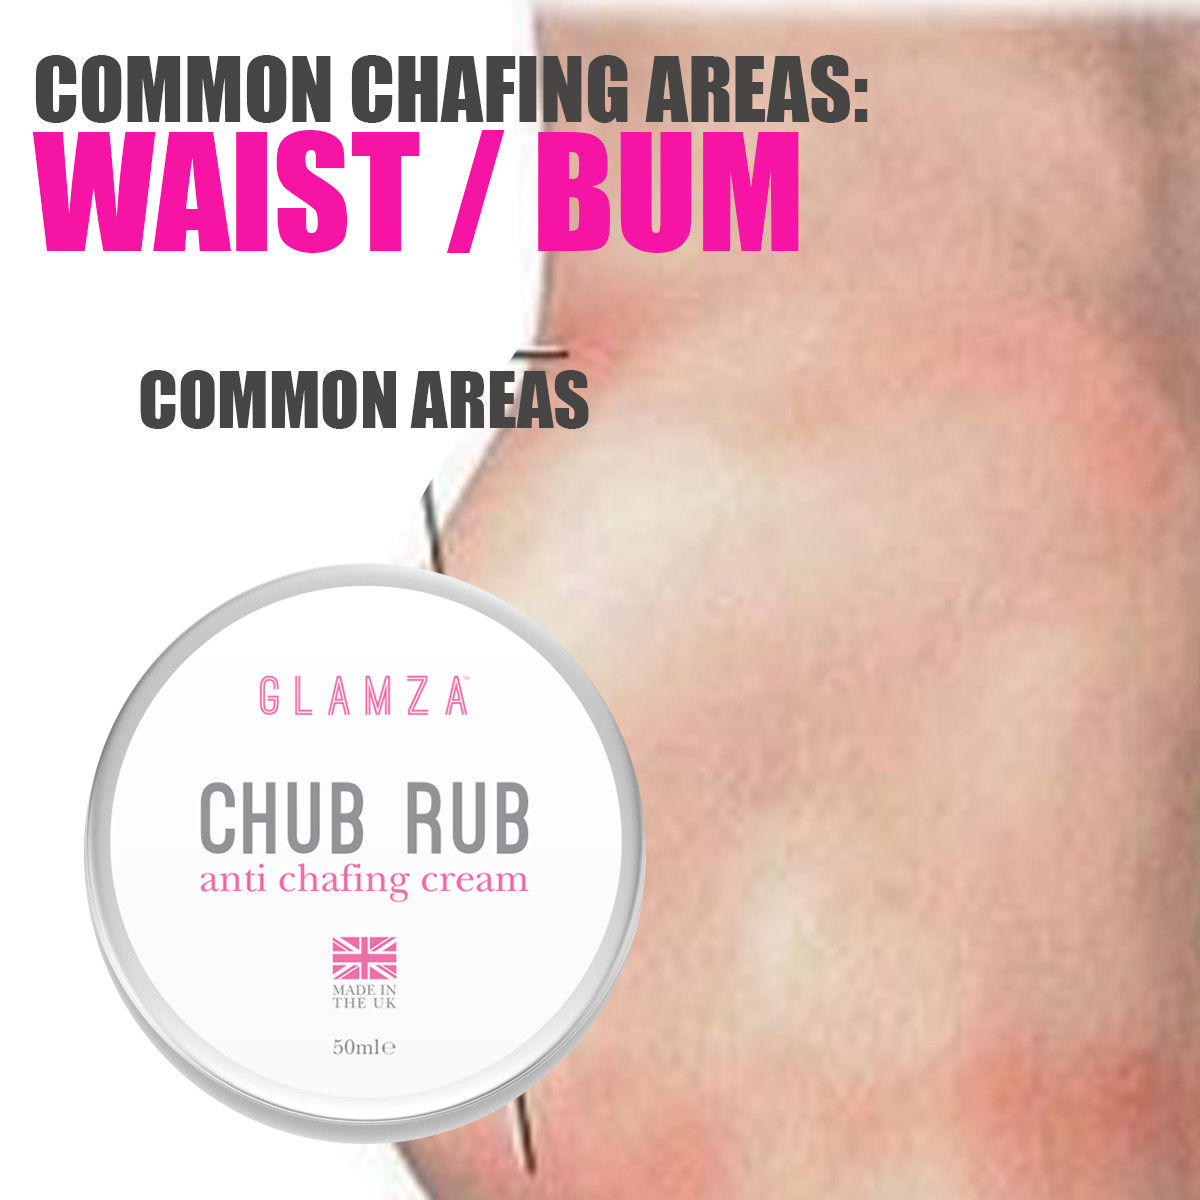 Glamza Chub Rub Anti Chafing Cream for Smooth Skin - Full Body Solution - Sports, Running, Hand and Feet Care 50g, Skin Care by Glamza Beauty